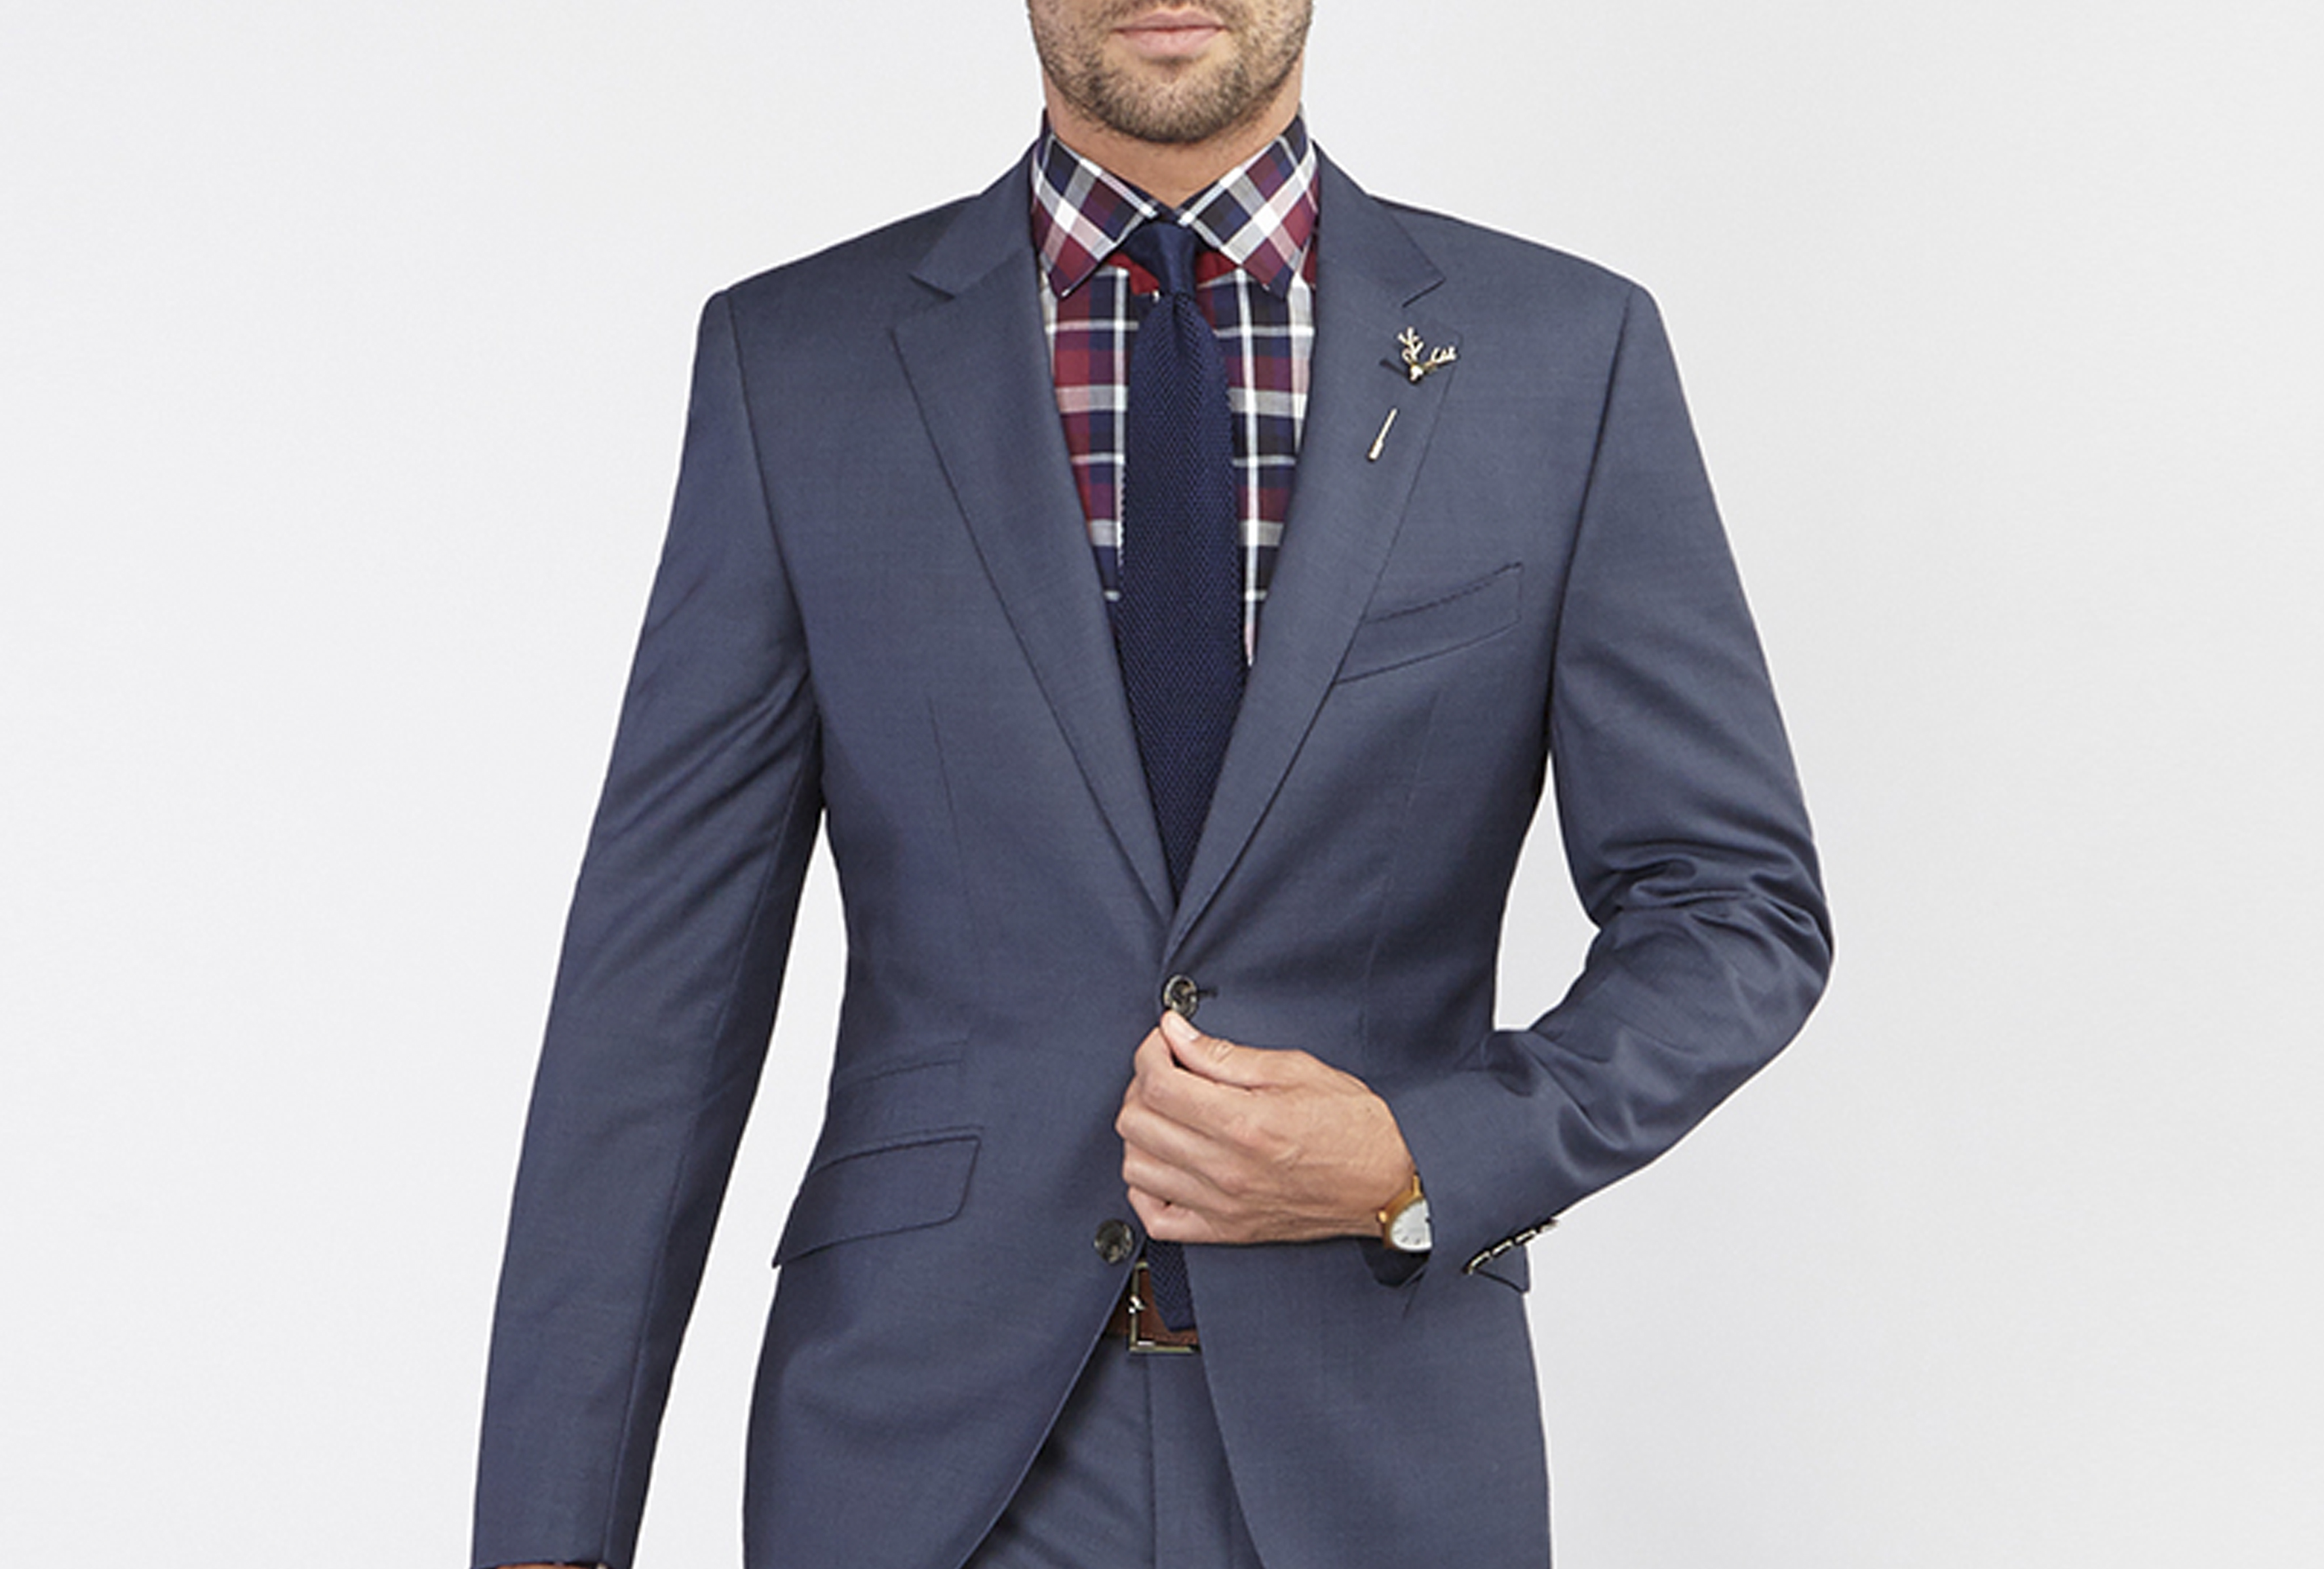 SS08 | Navy Suit | Blue Tie |check Shirt